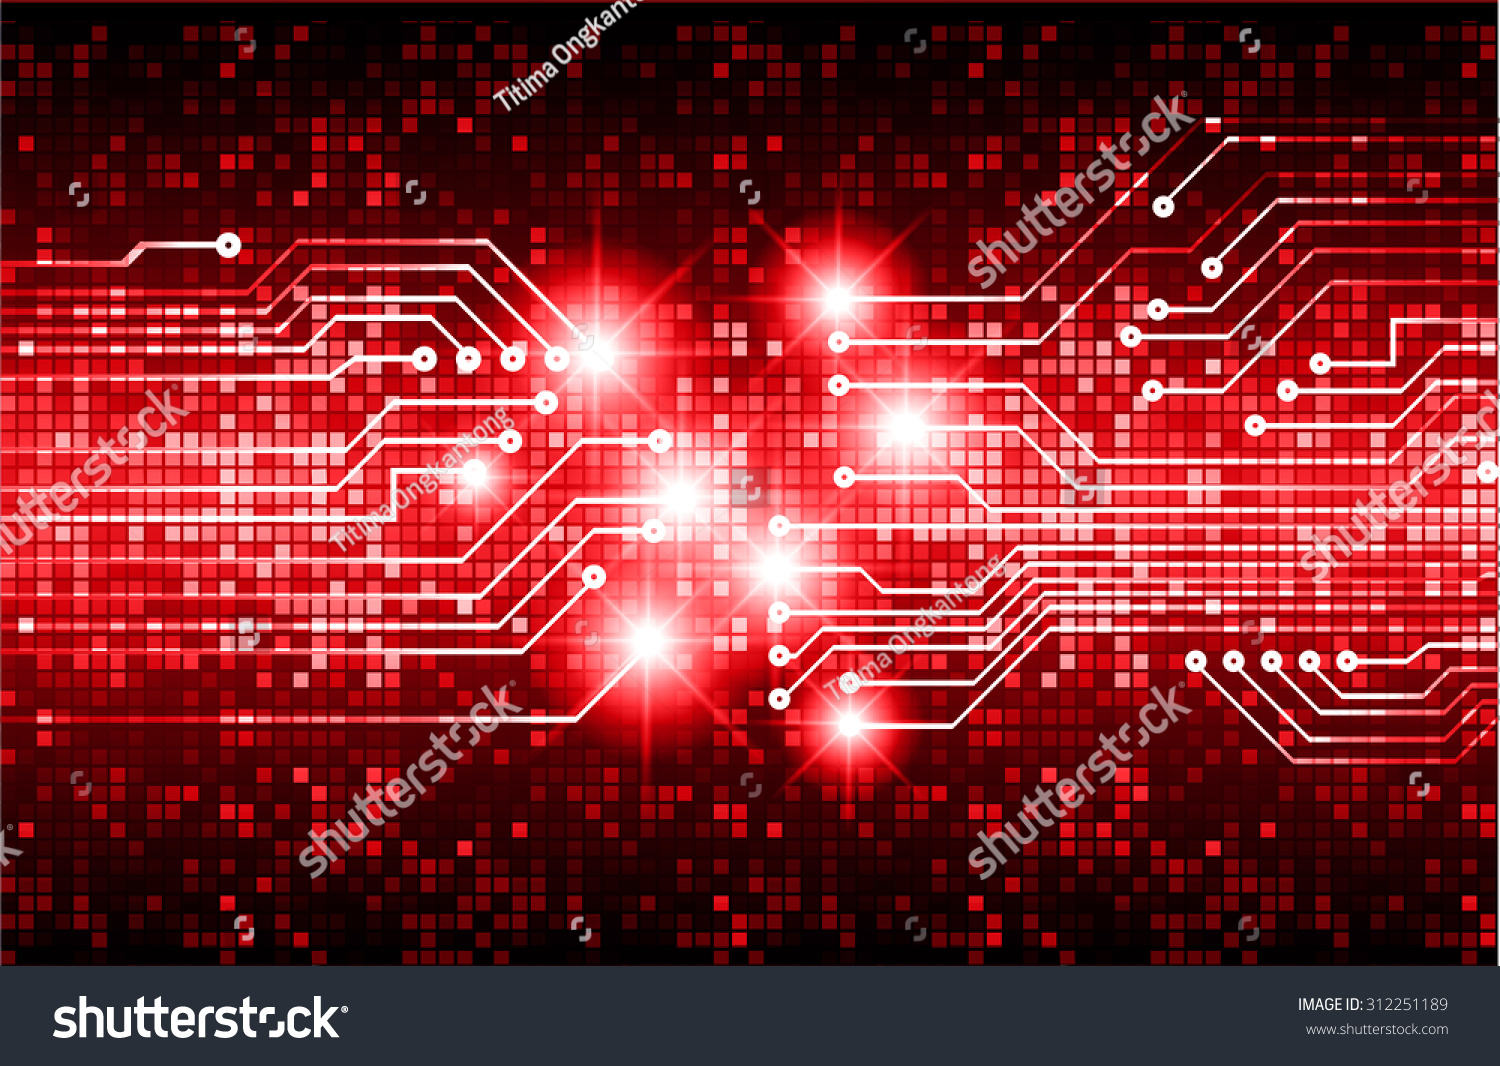 website colors neon : Dark Red Color Light Abstract Technology Background For Computer Graphic Website Internet And Business Circuit